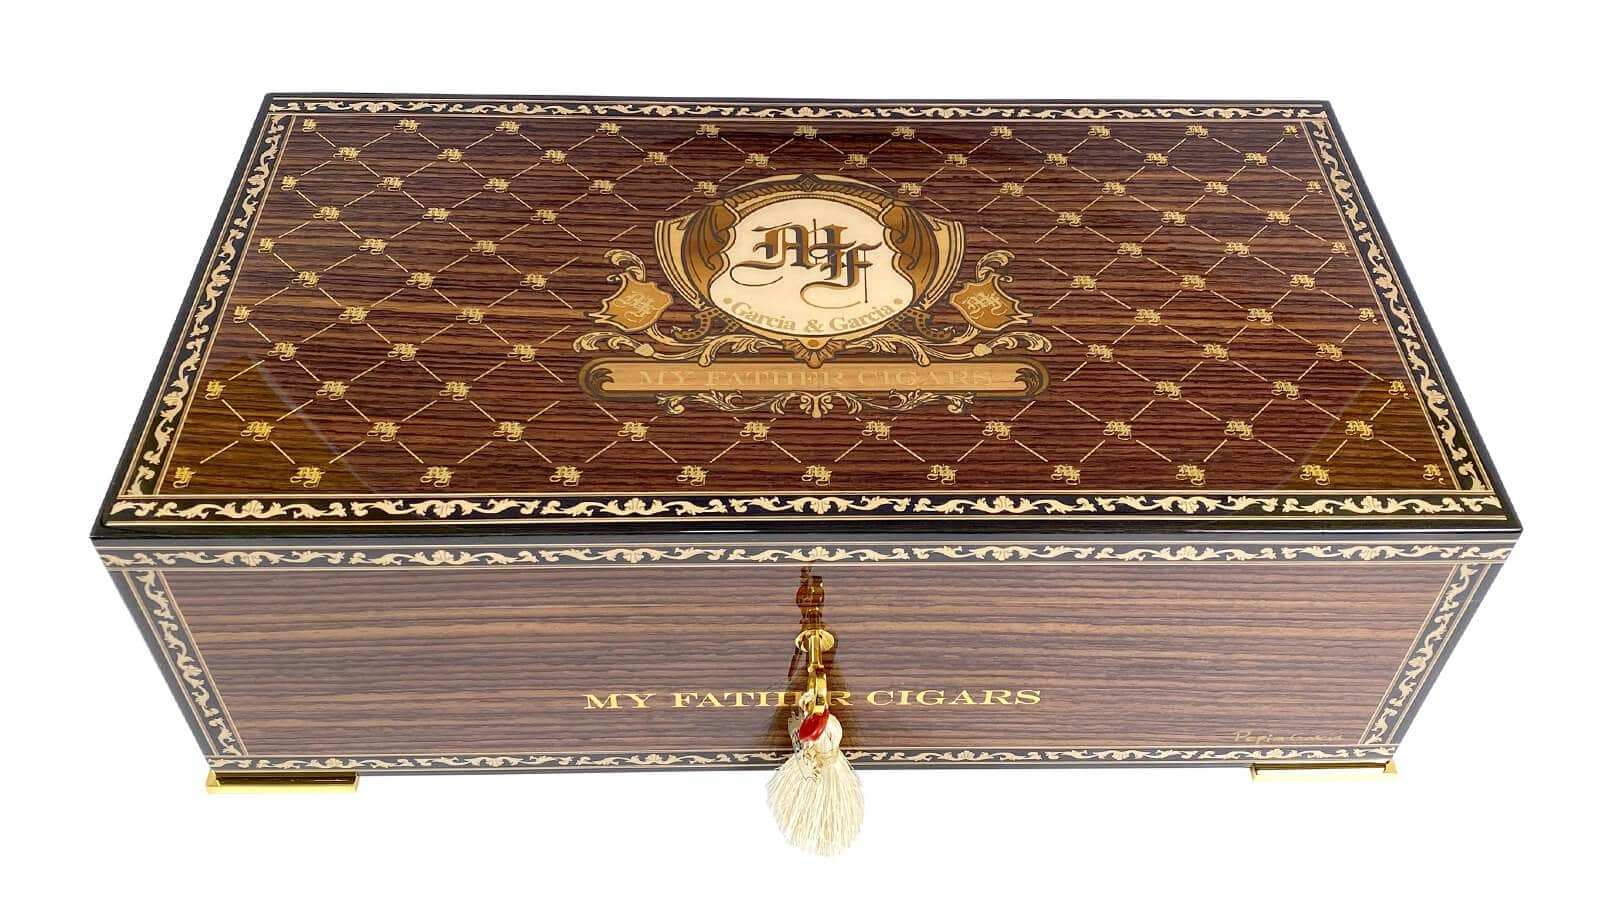 MY FATHER CIGARS ANNOUNCES HUMIDOR DELUXE IN CELEBRATION OF PEPIN'S 70TH BIRTHDAY